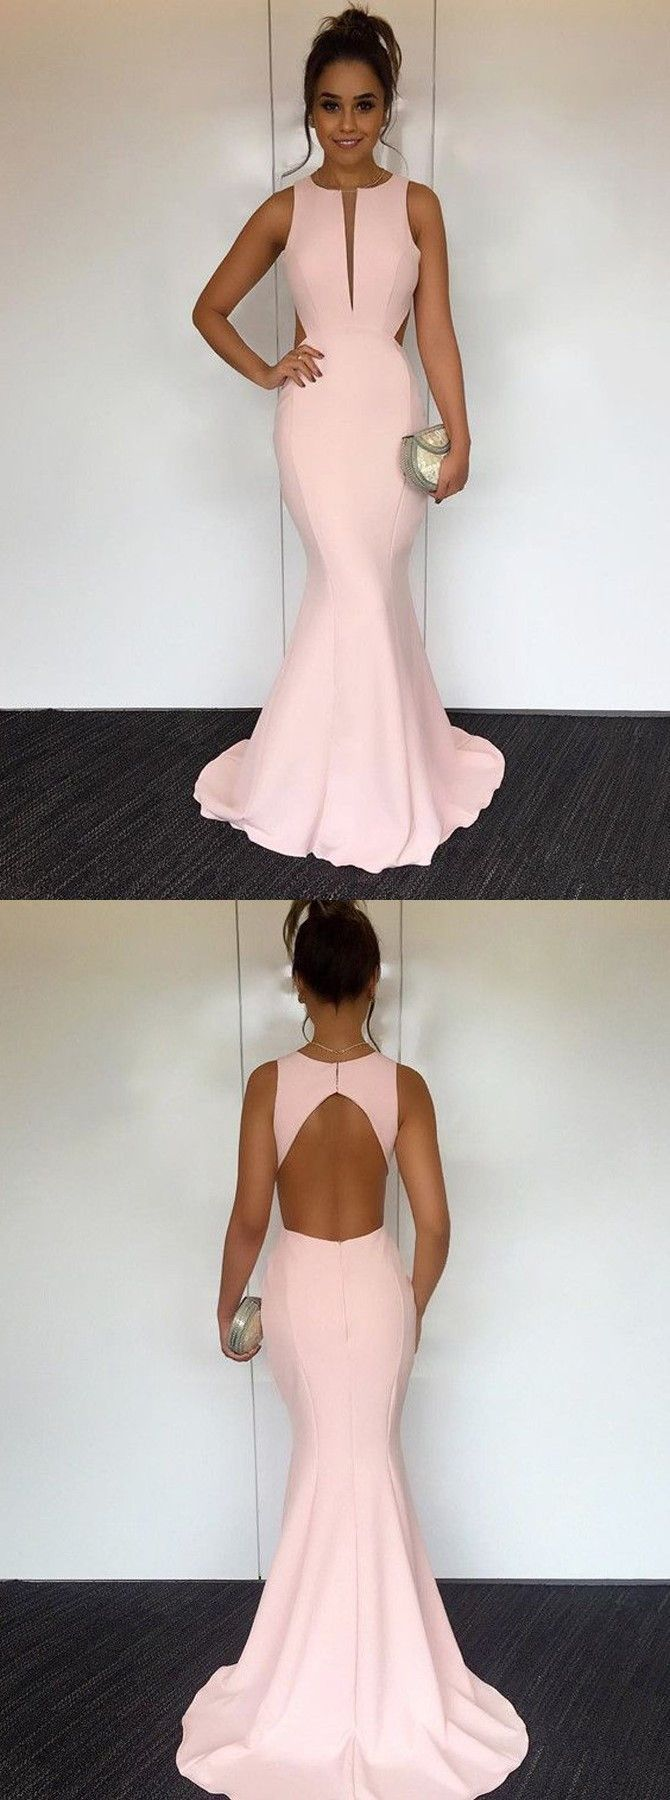 elegant pink mermaid prom party dresses with open back, fashion formal evening gowns. #longpromdresses